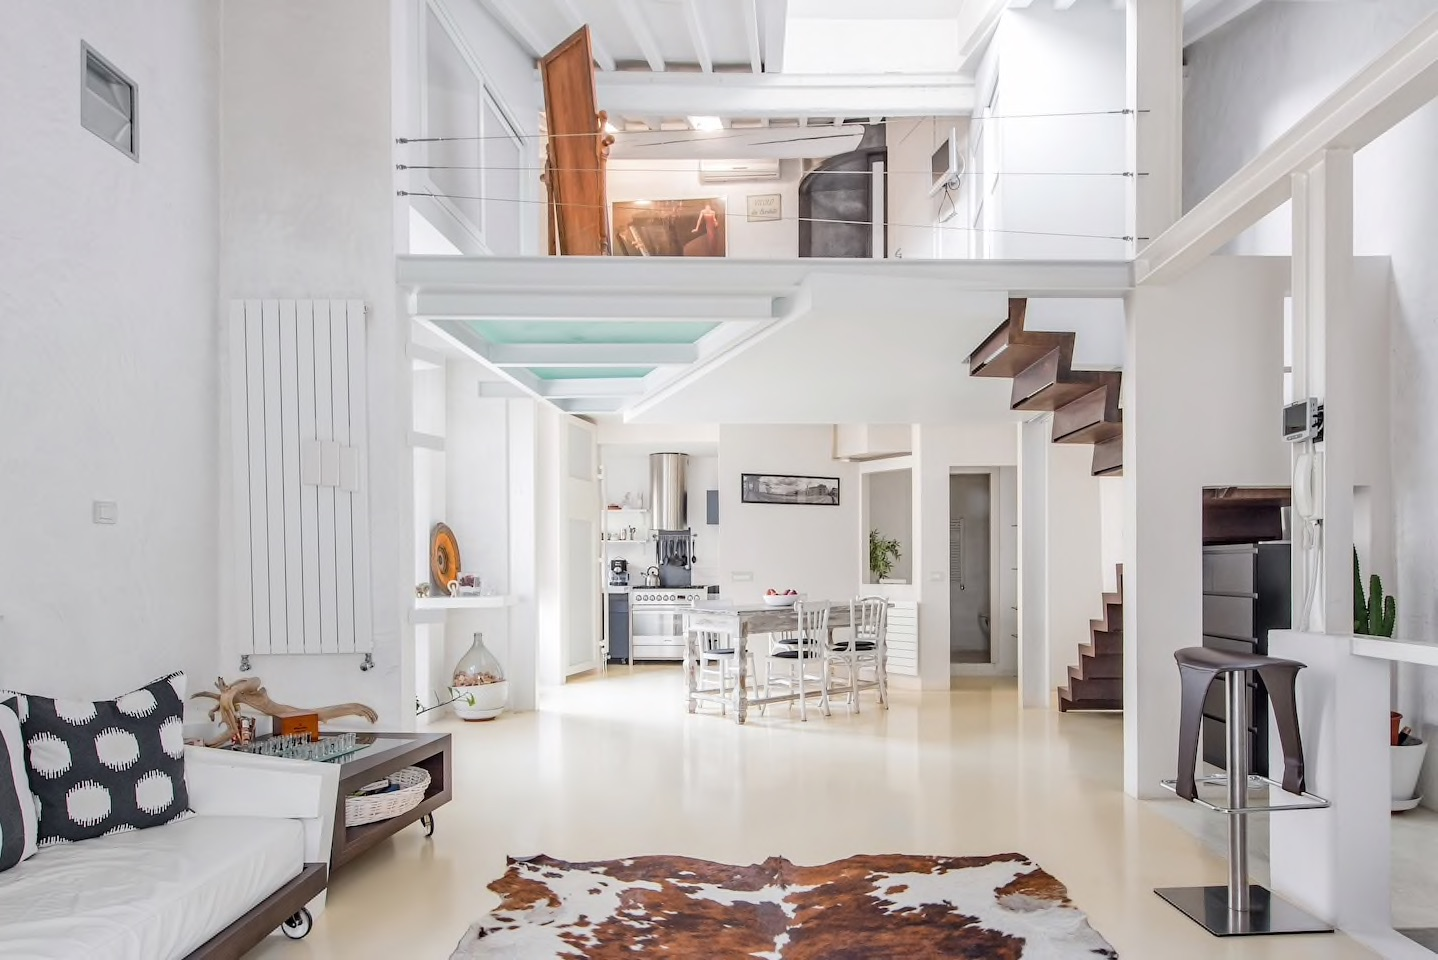 This Florence Airbnb is a trendy architects loft with unique features.